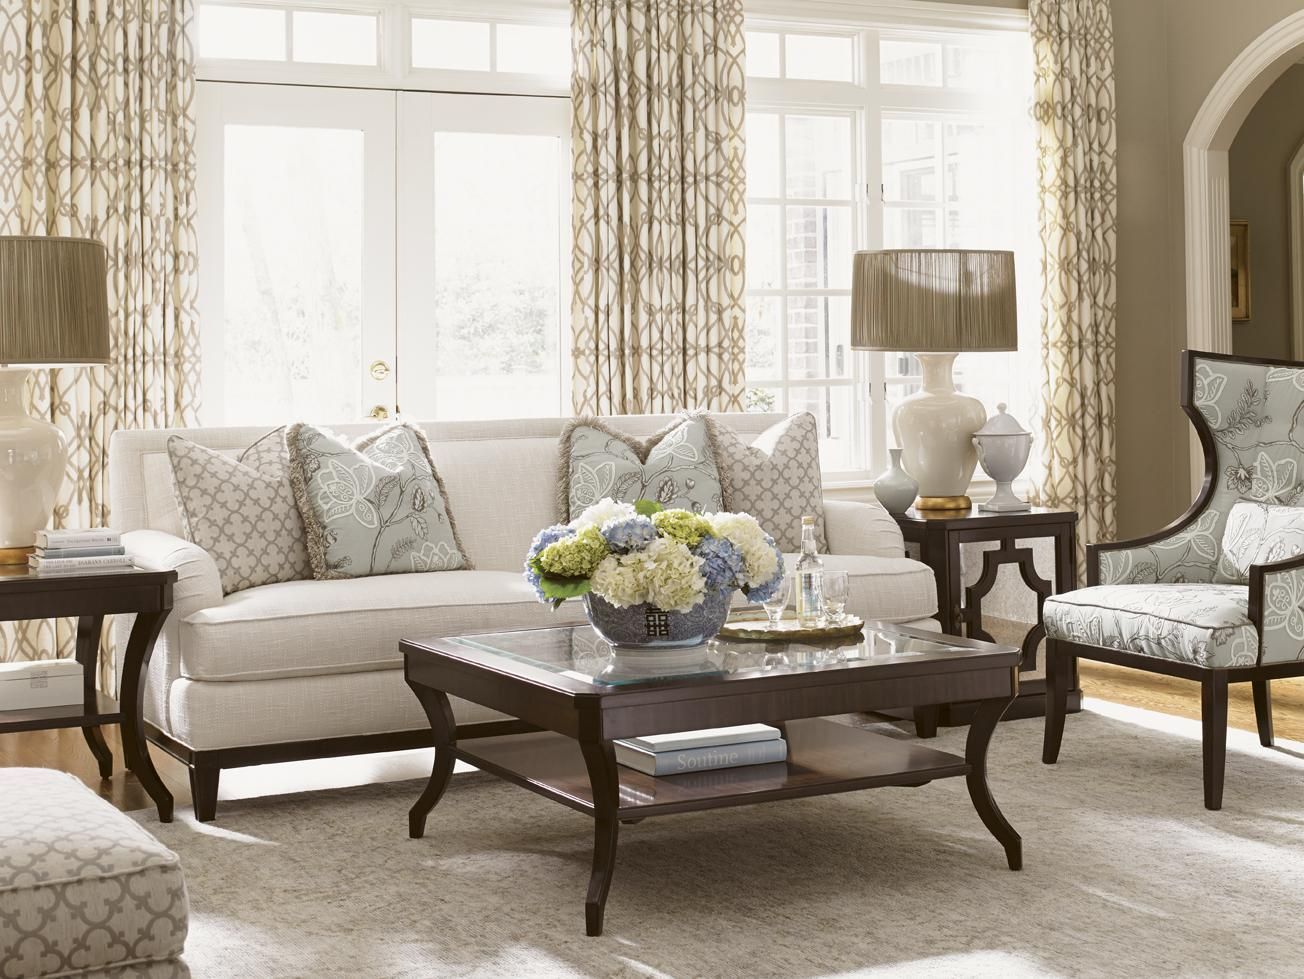 Kensington Place Stationary Living Room Group By Lexington At Belfort  Furniture